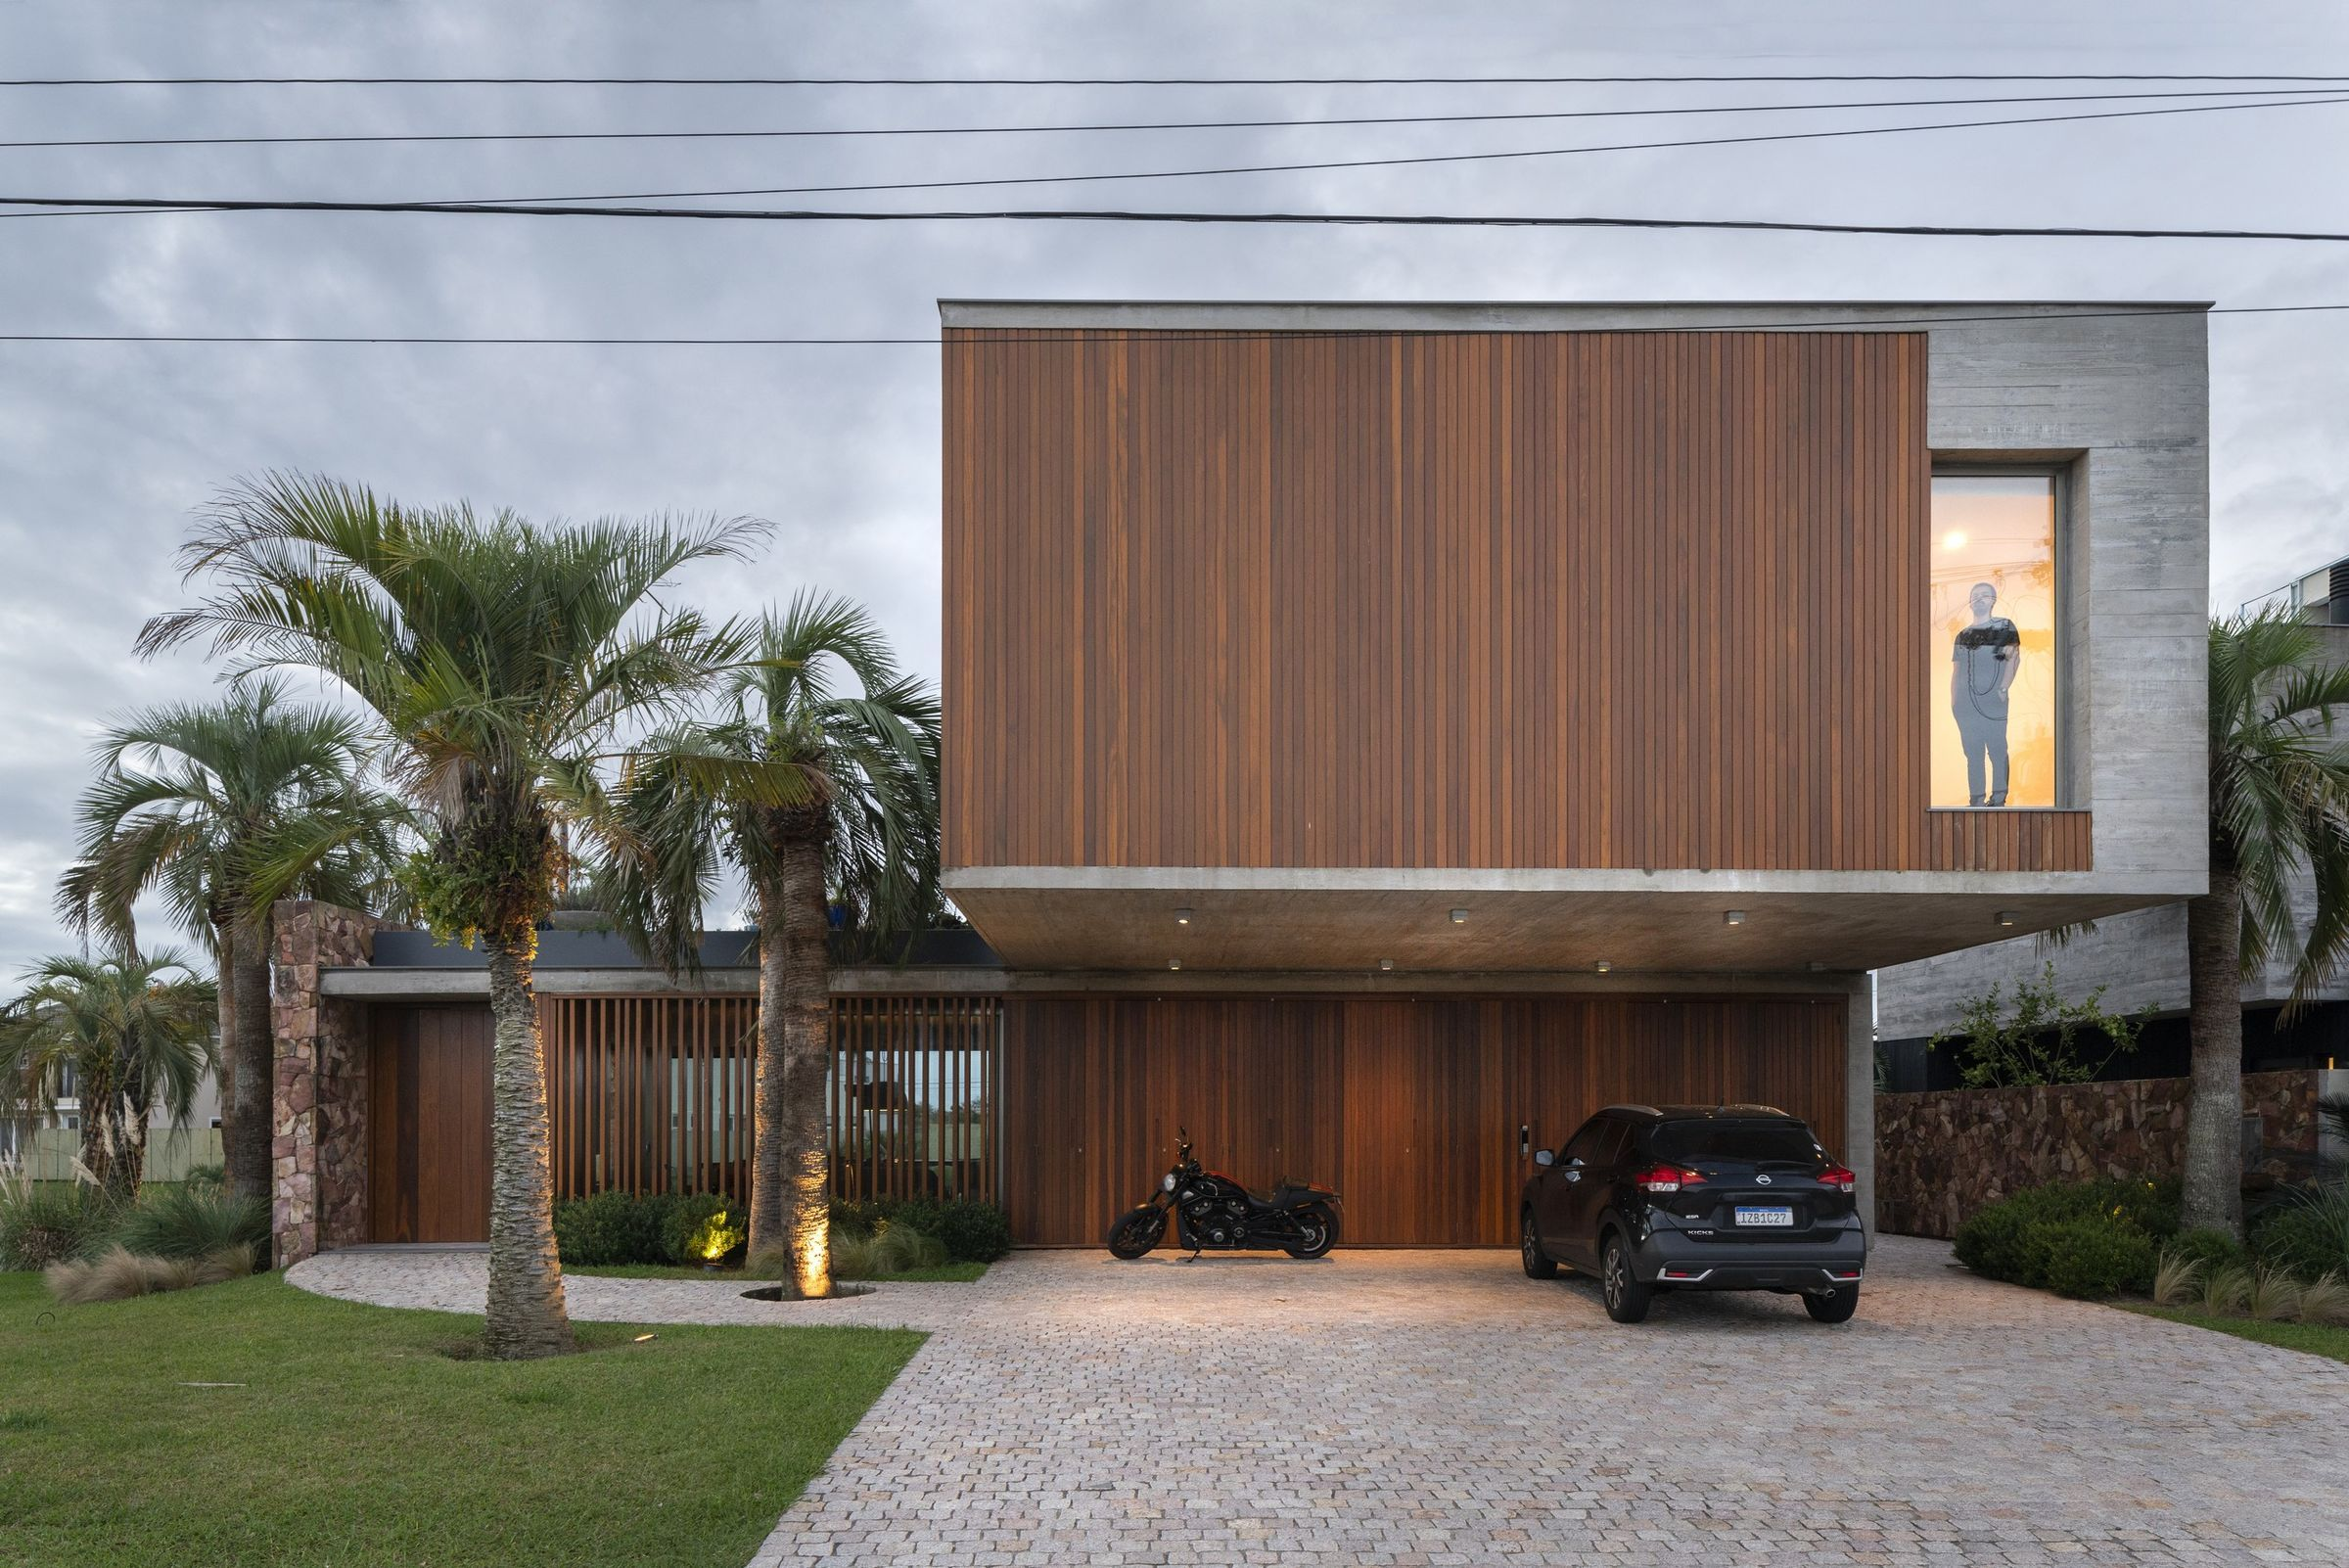 casa LSGDM Rmk! Arquitetura Media Photos and Videos